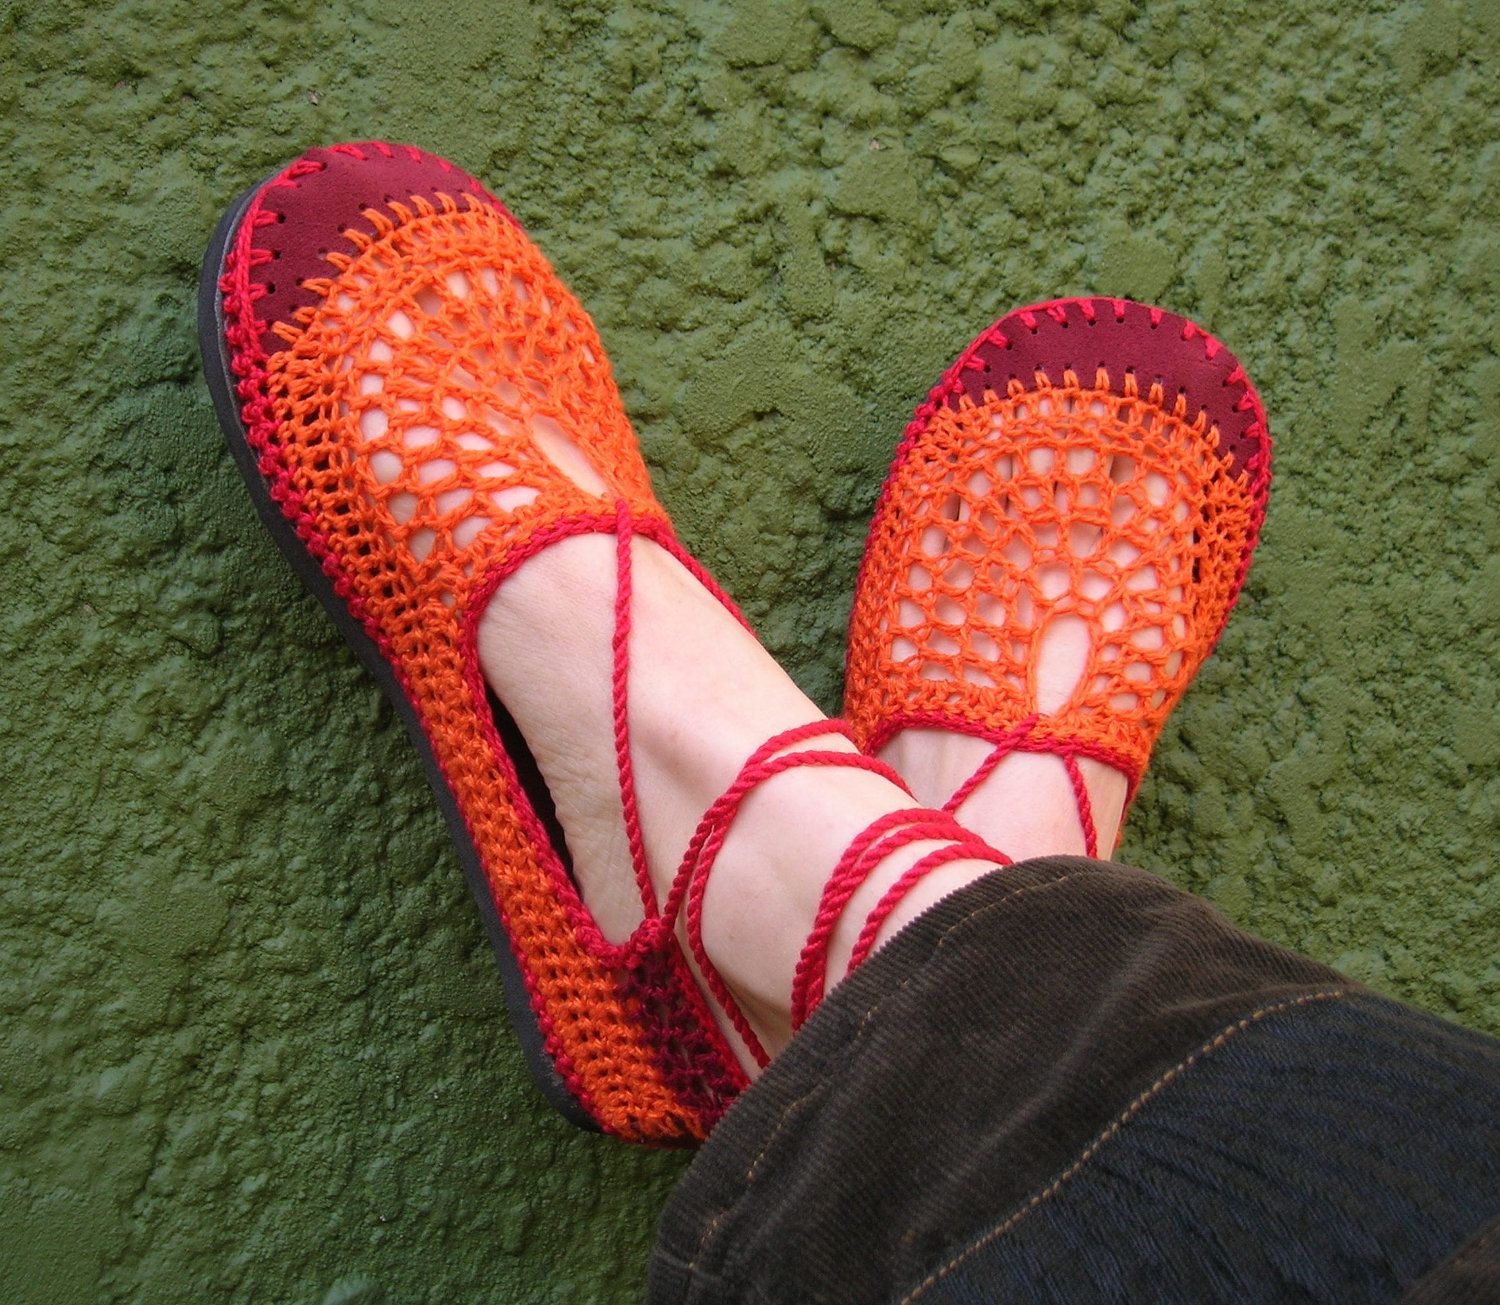 Lace up crochet SHOES - Mary Jane - Tangerine w/ burgundy suede ...